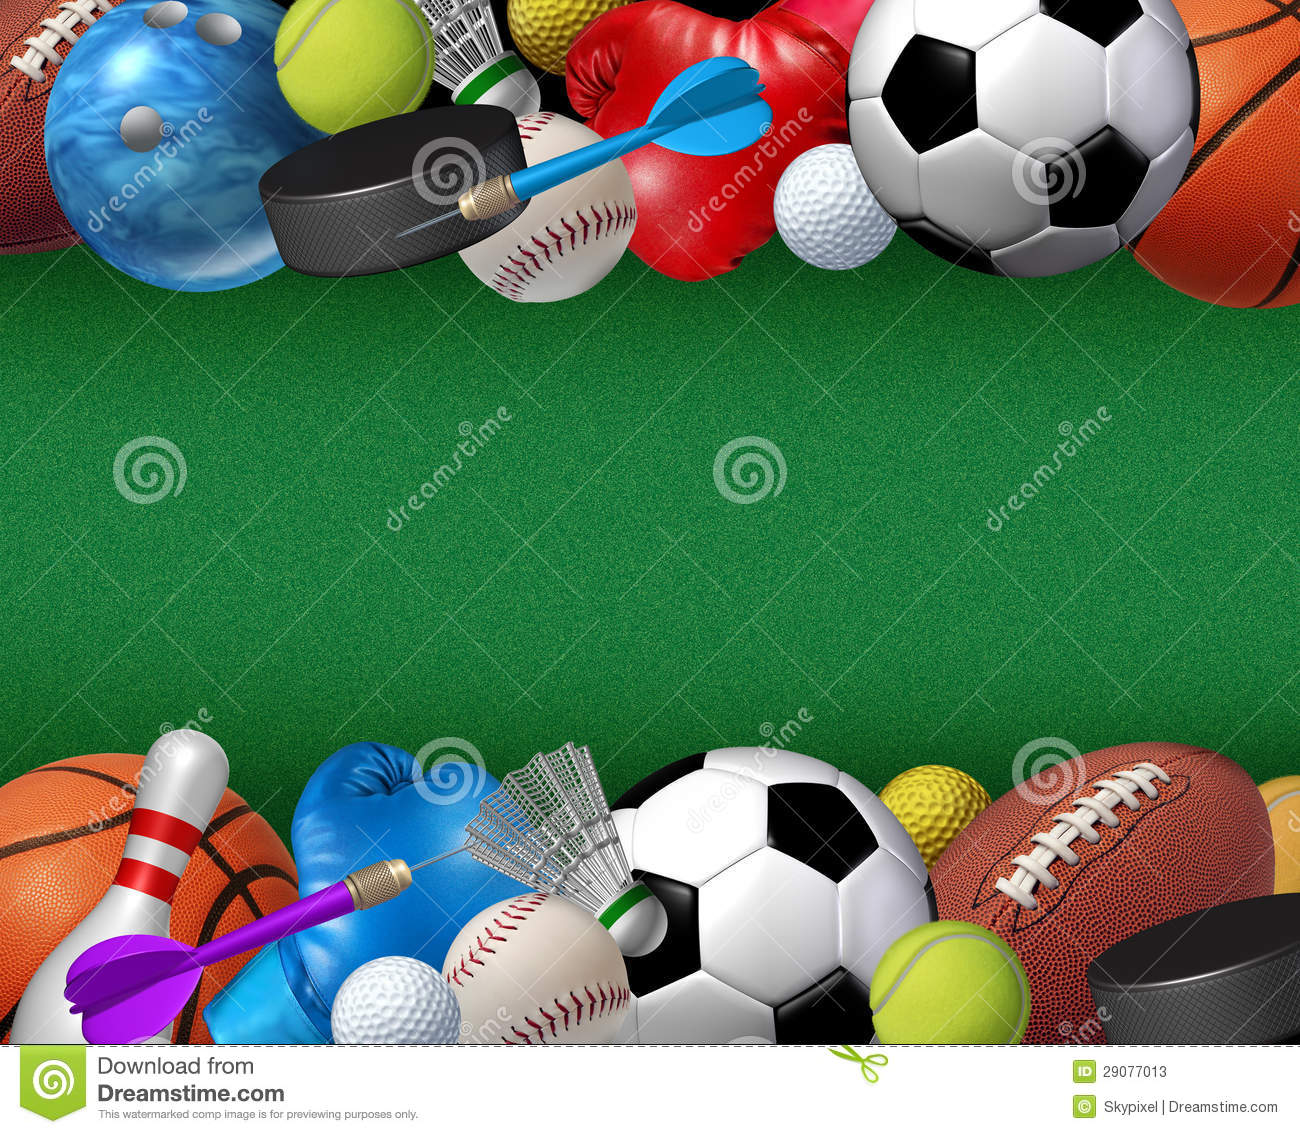 sport and activities border stock illustration illustration of rh dreamstime com Sports Balls Clip Art Sports Balls Clip Art